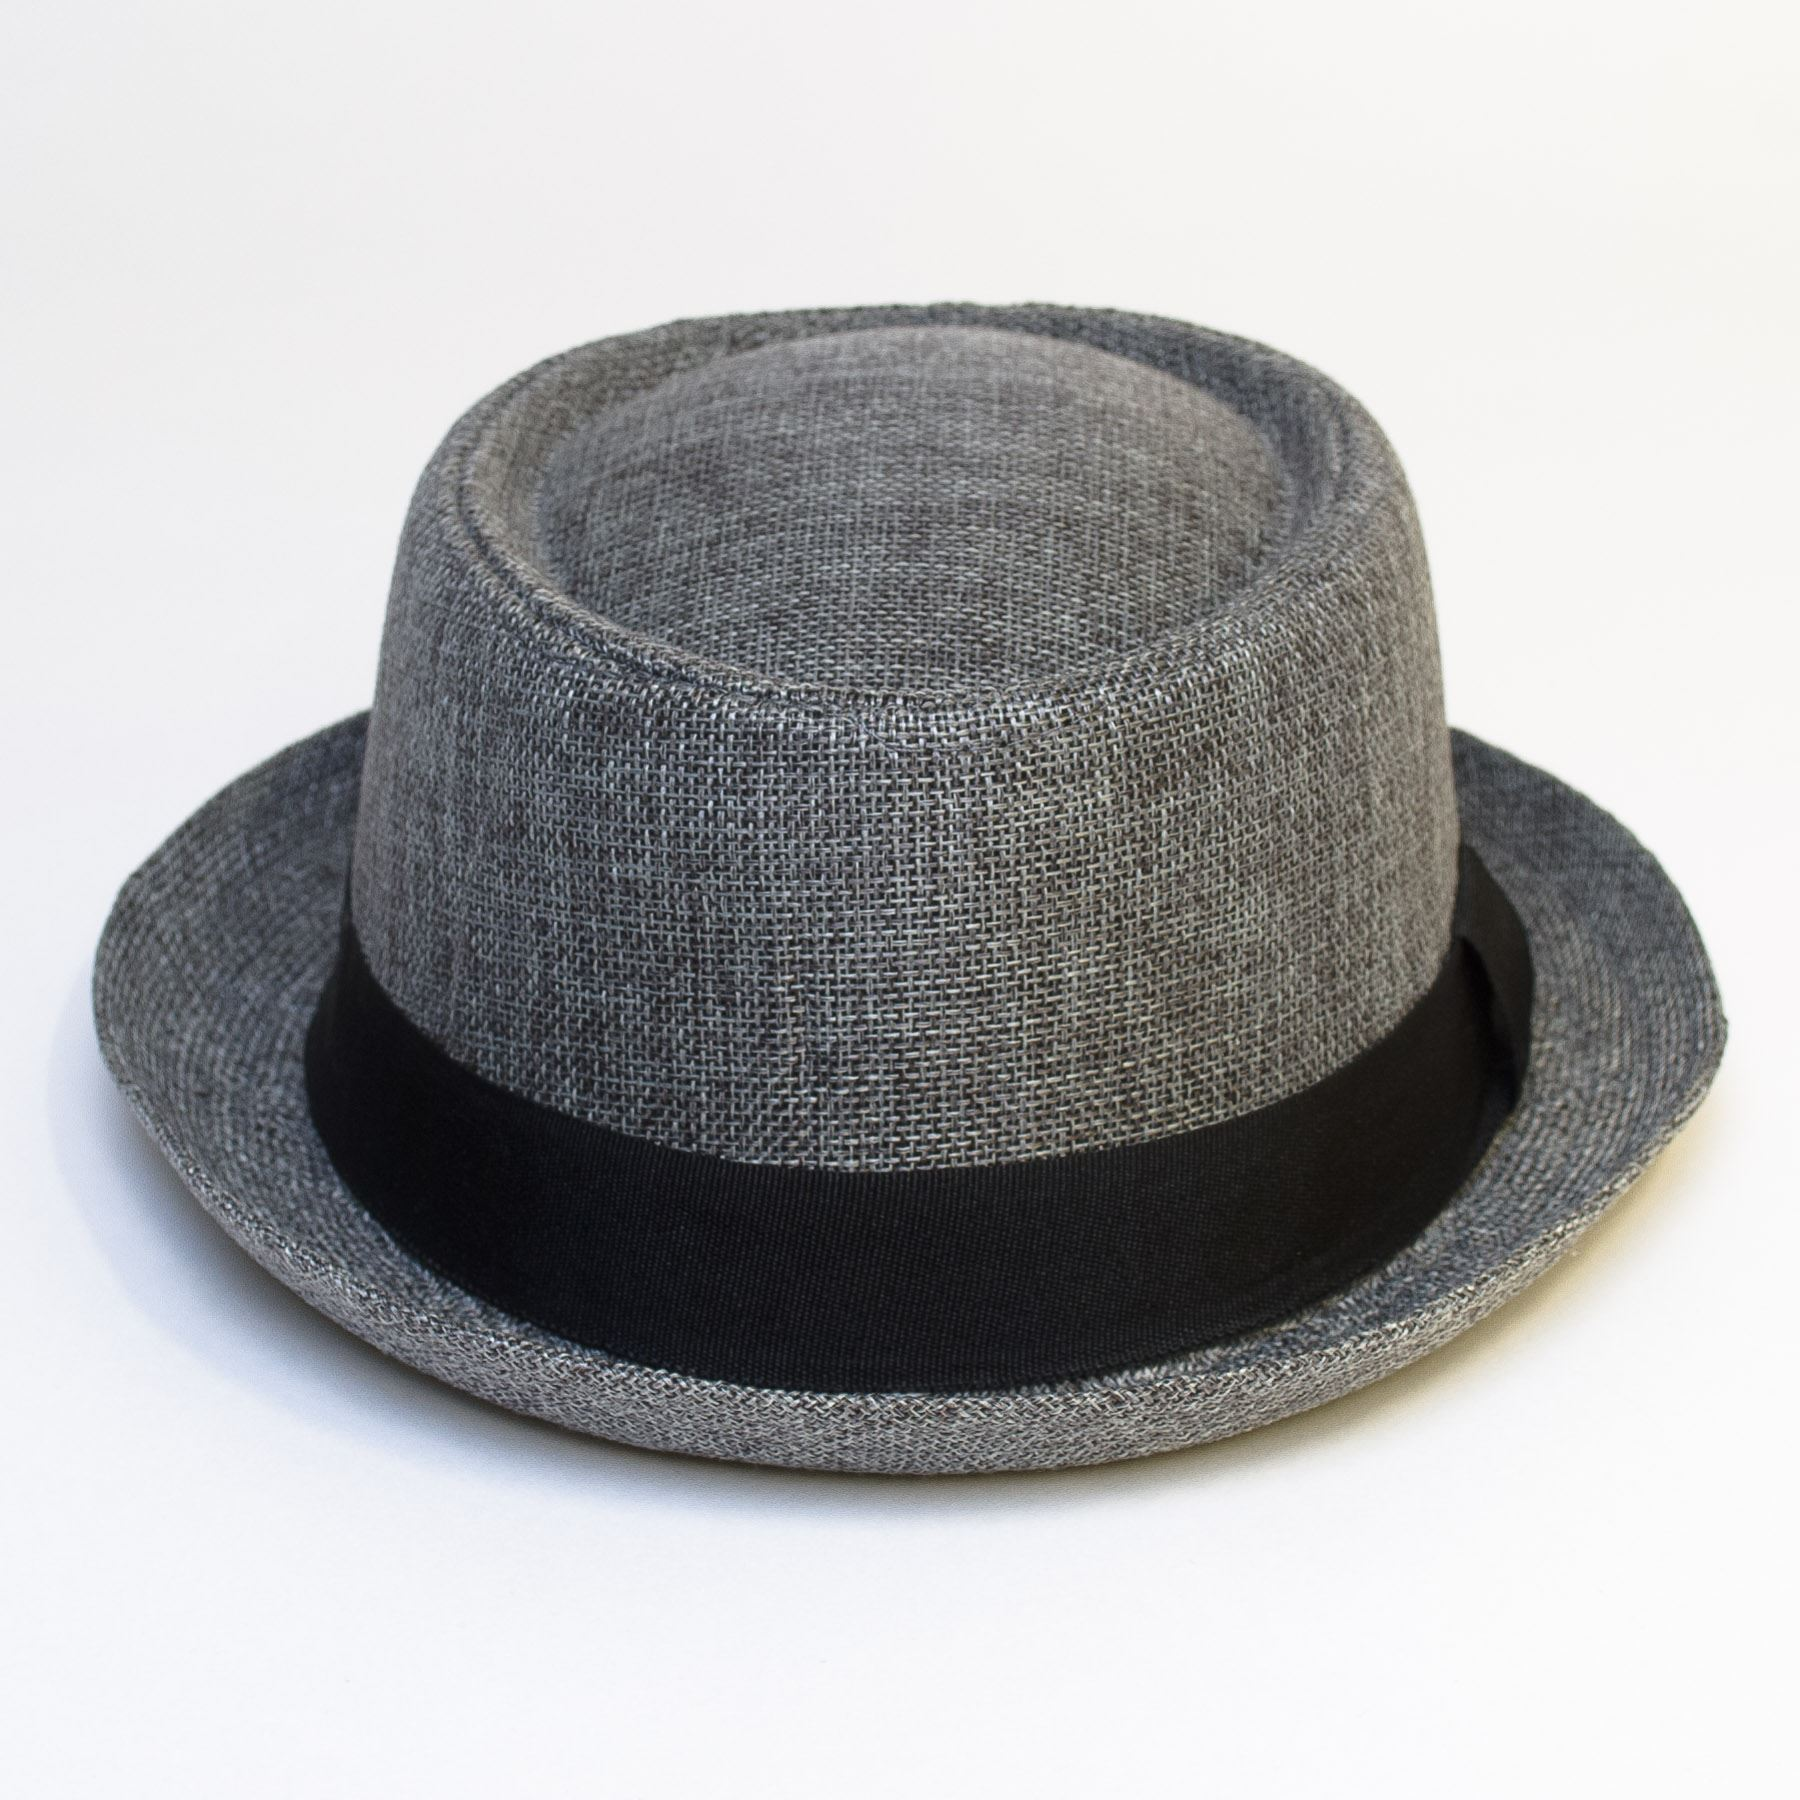 Pork-Pie-Hat-with-Black-Grosgrain-Band thumbnail 20